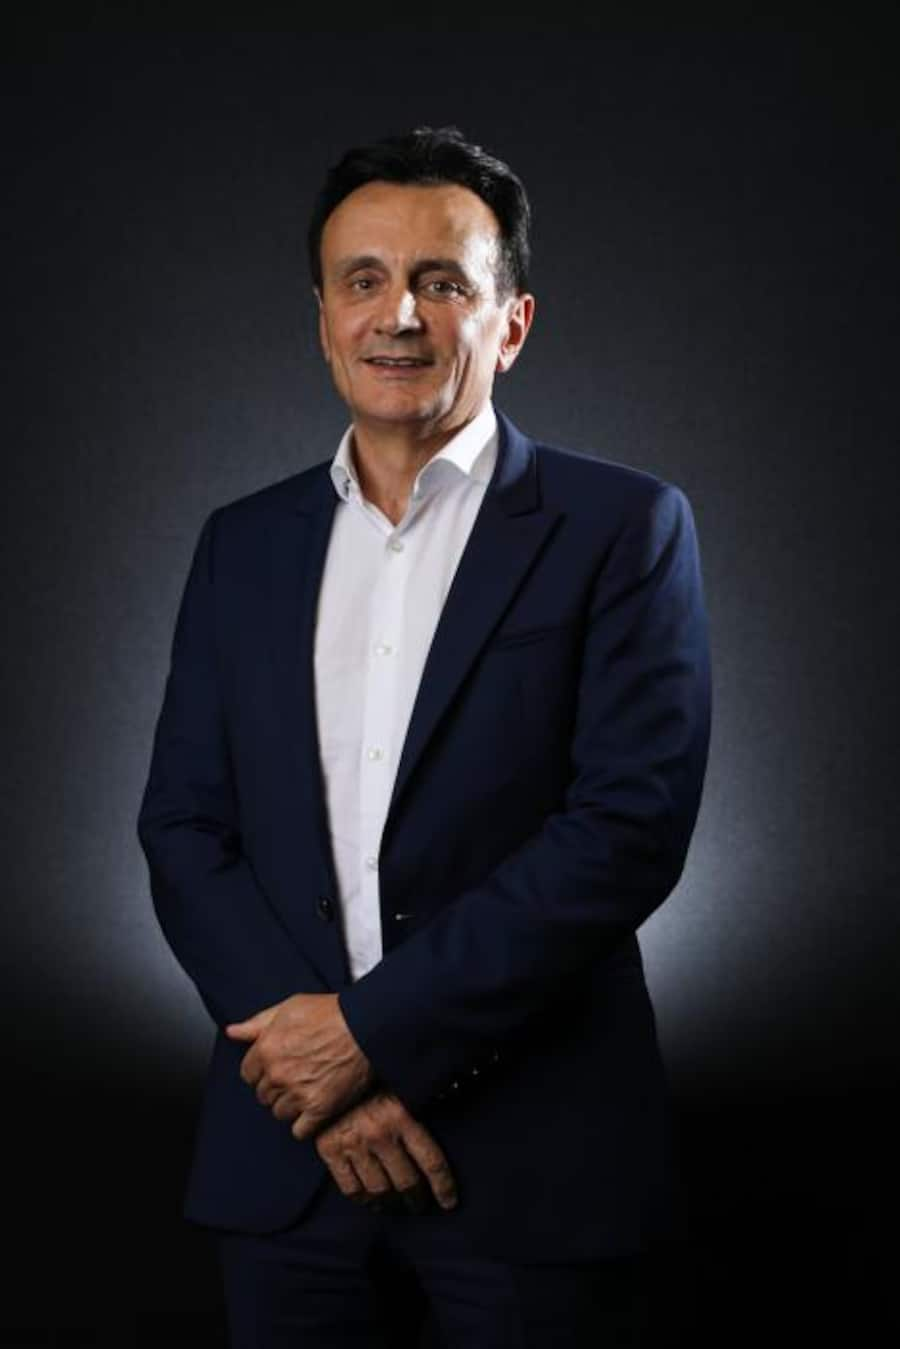 Pascal Soriot, chief executive officer of Astrazeneca Plc, poses for a photograph before an interview in London, U.K., on Monday, Sept. 4, 2017. Soriotsaid he's worried about the lack of progress in negotiations between the U.K. and the European Union on their future ties, which could impede sales of drugs in foreign markets afterBrexit. Photographer: Chris Ratcliffe/Bloomberg